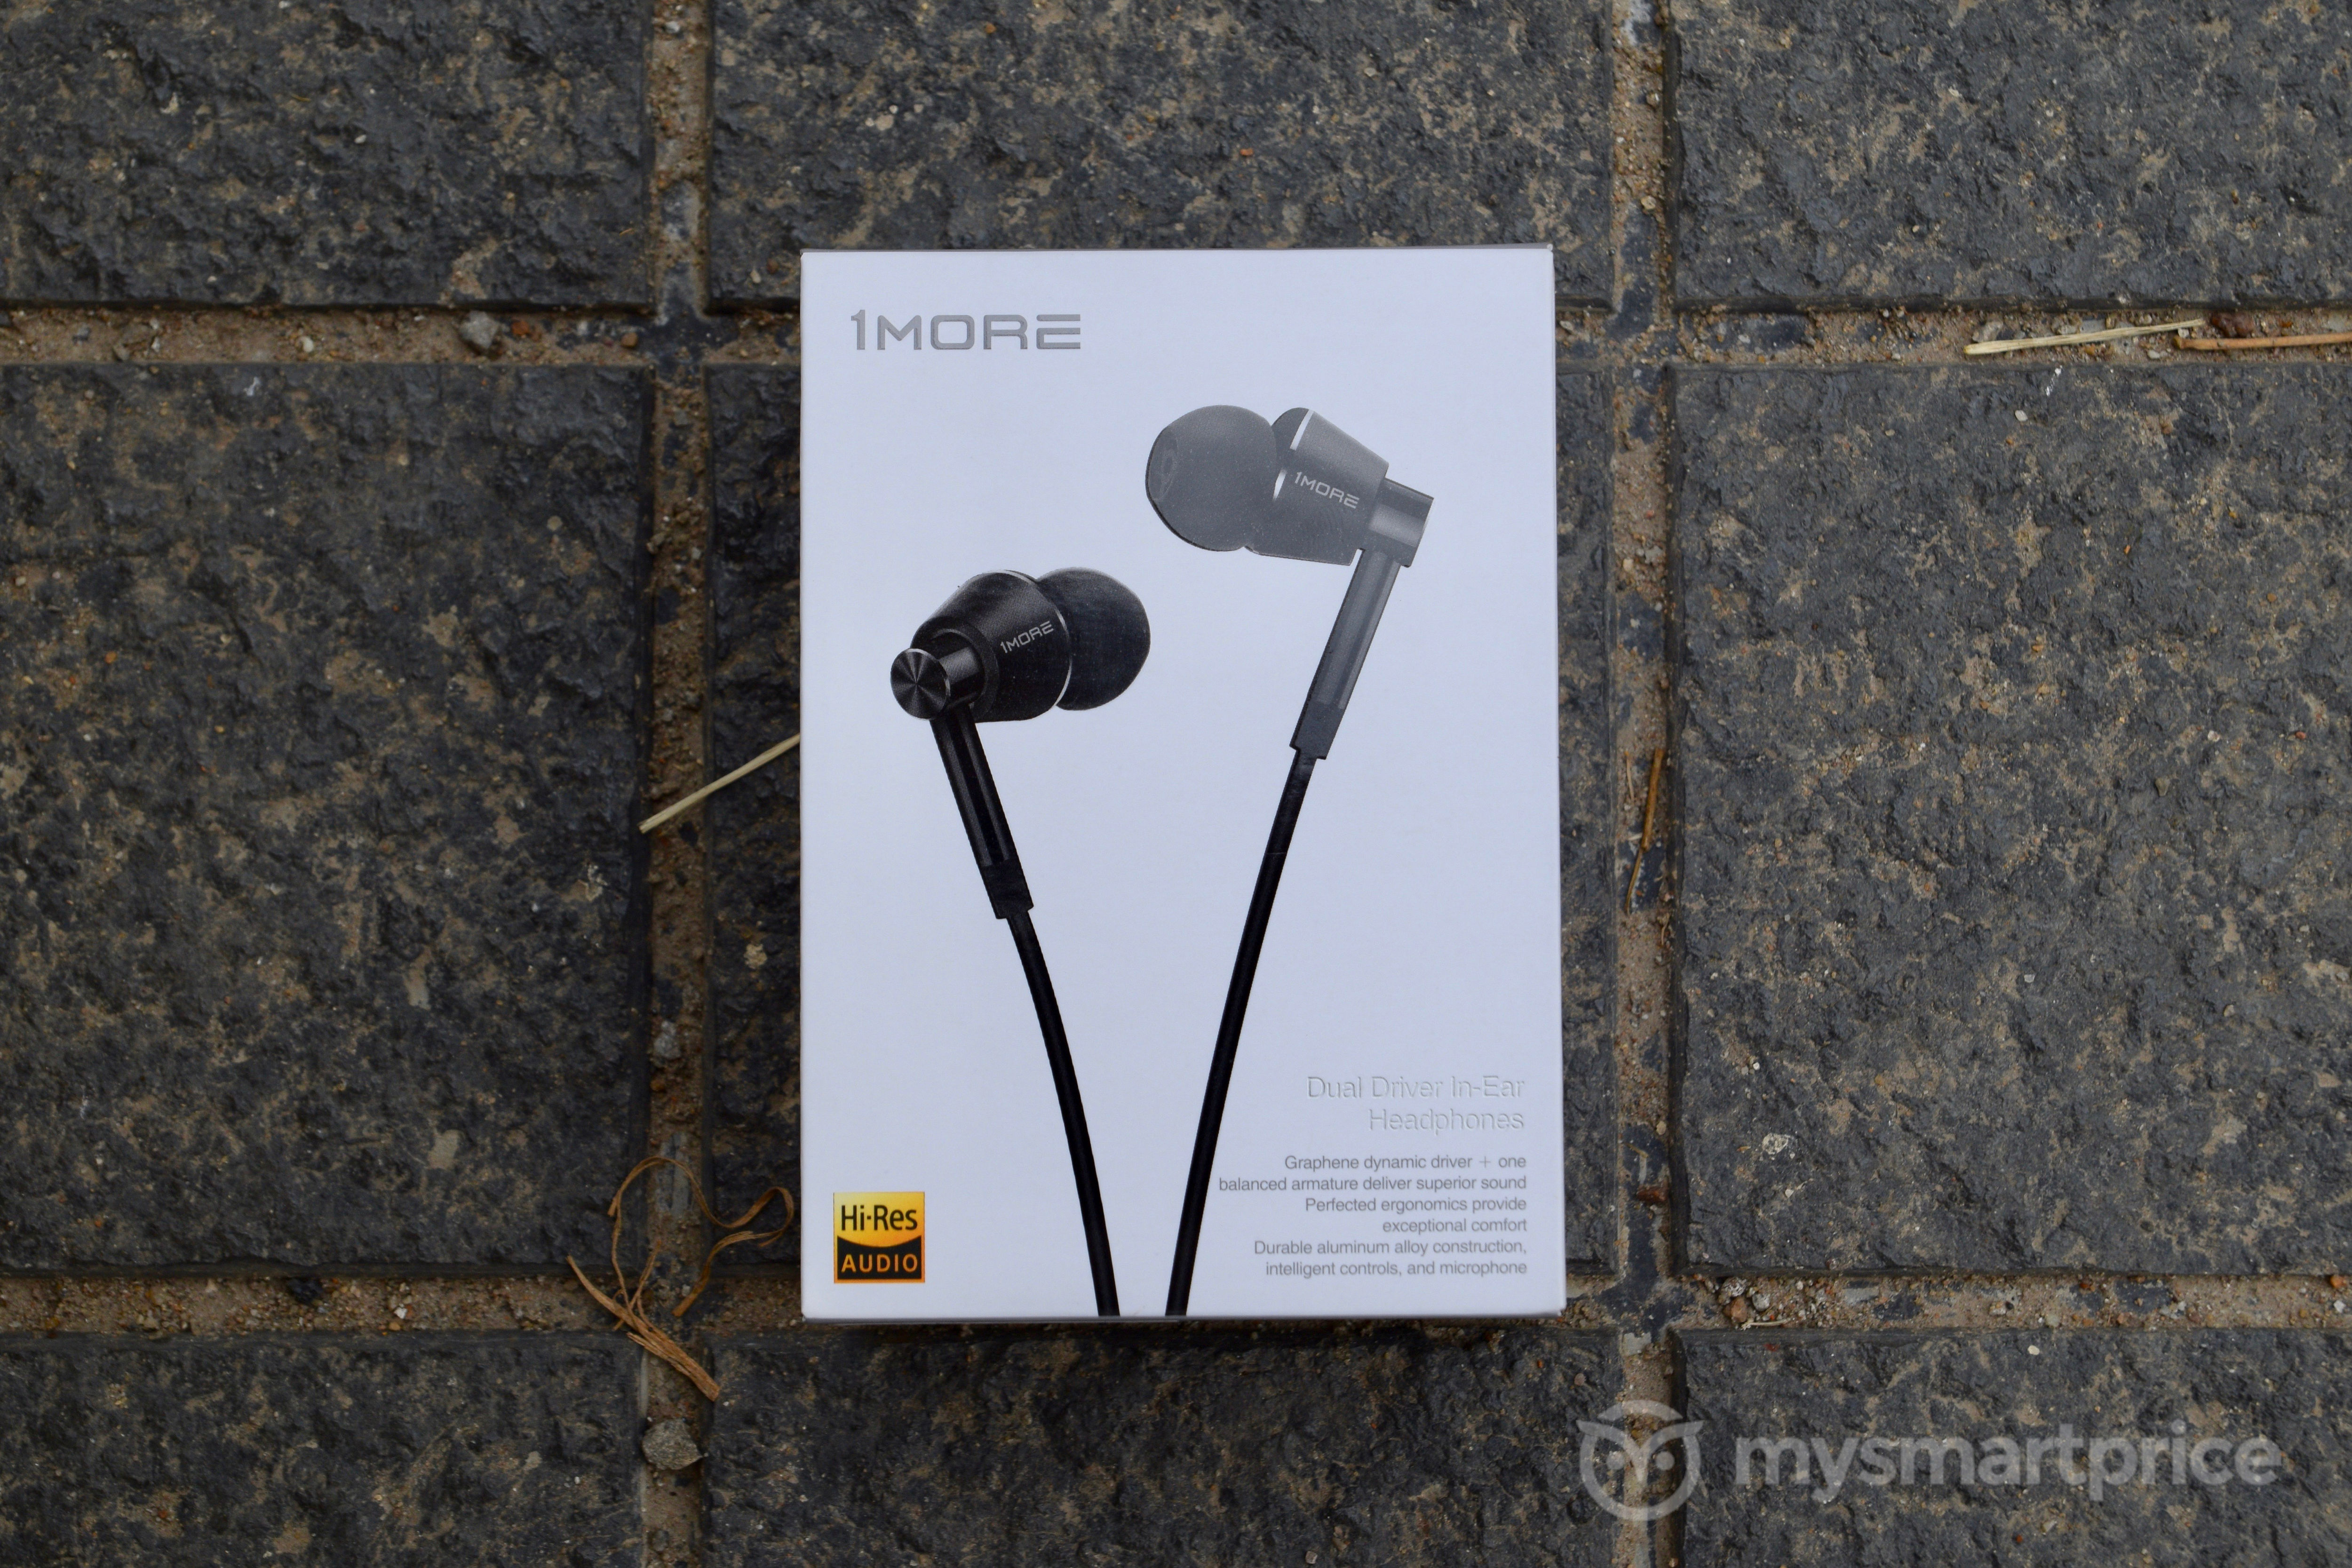 1More Dual Driver Headphones Review: Box